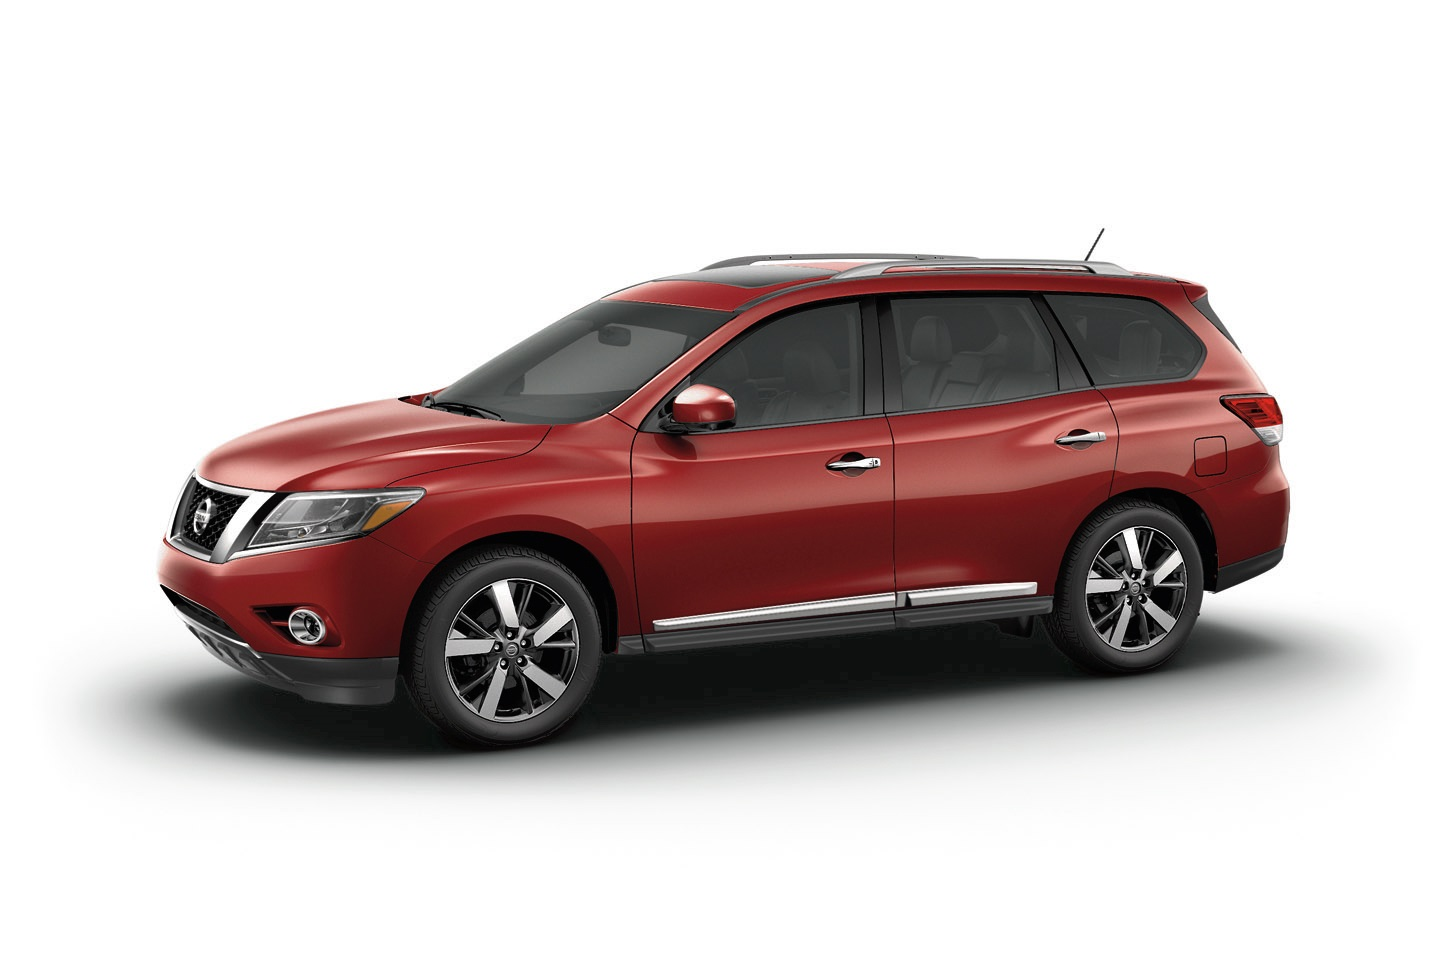 Manufacturer photo: The 2015 Pathfinder offers exceptional levels of versatility, fuel efficiency and full-size comfort for seven passengers